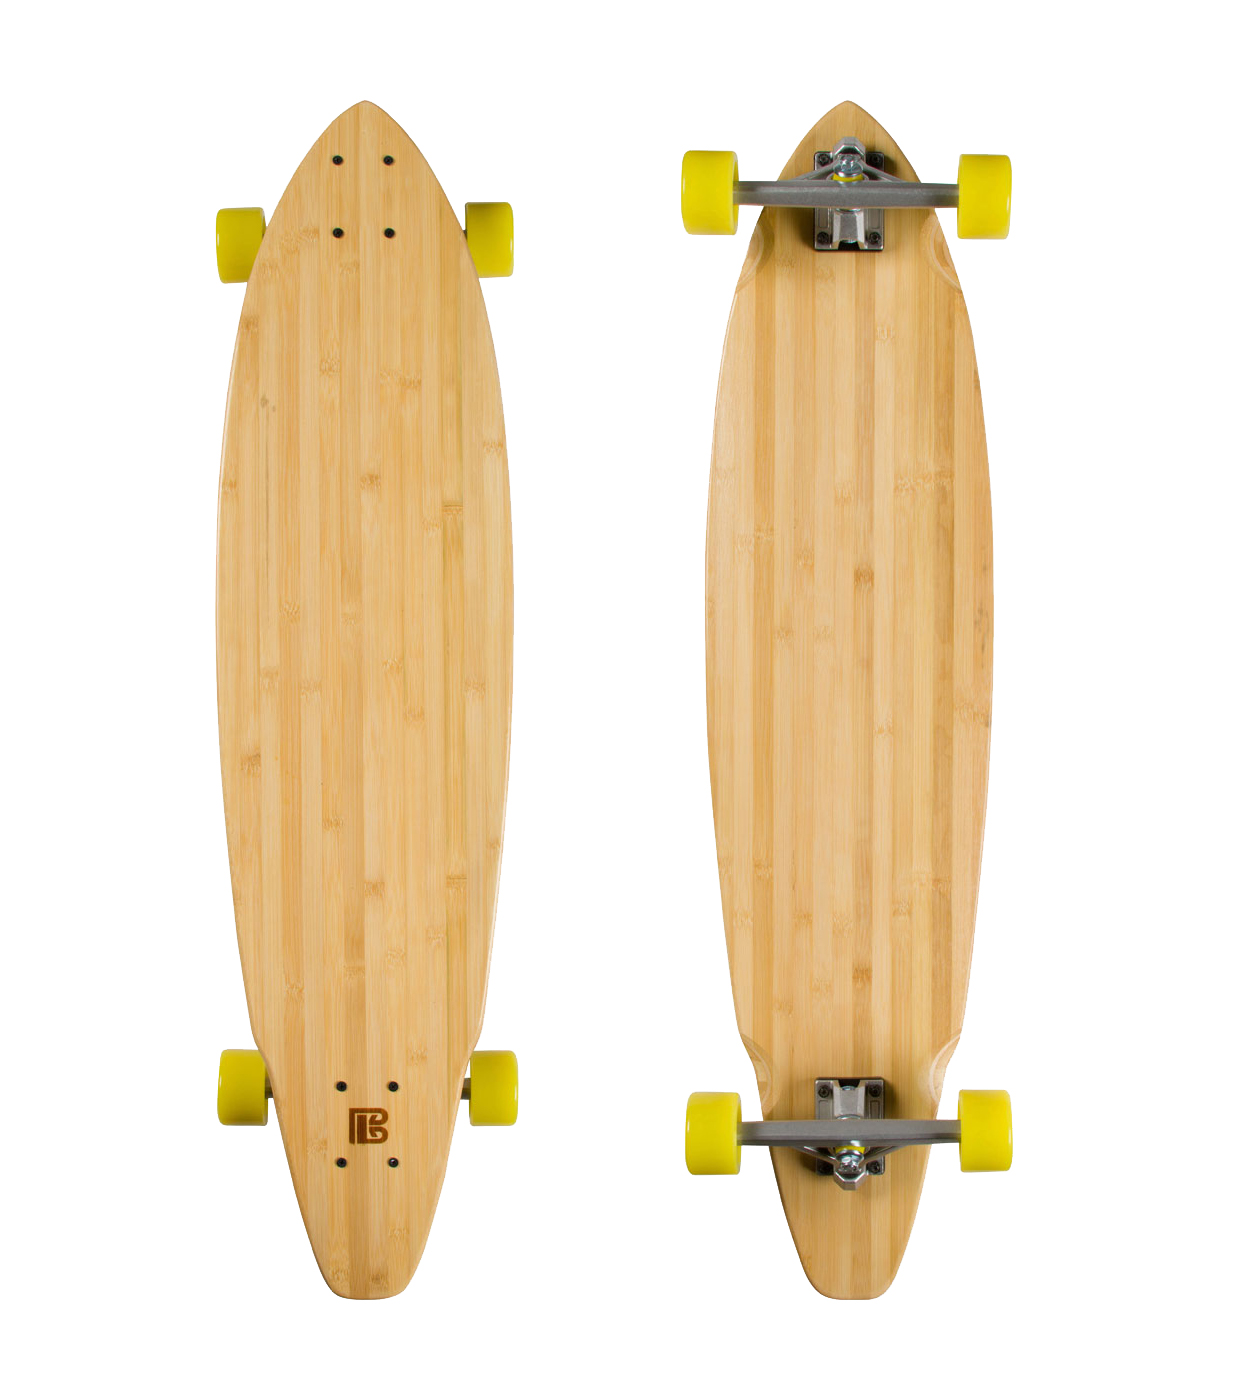 Radeckal Skateboard and Cruiser Trucks